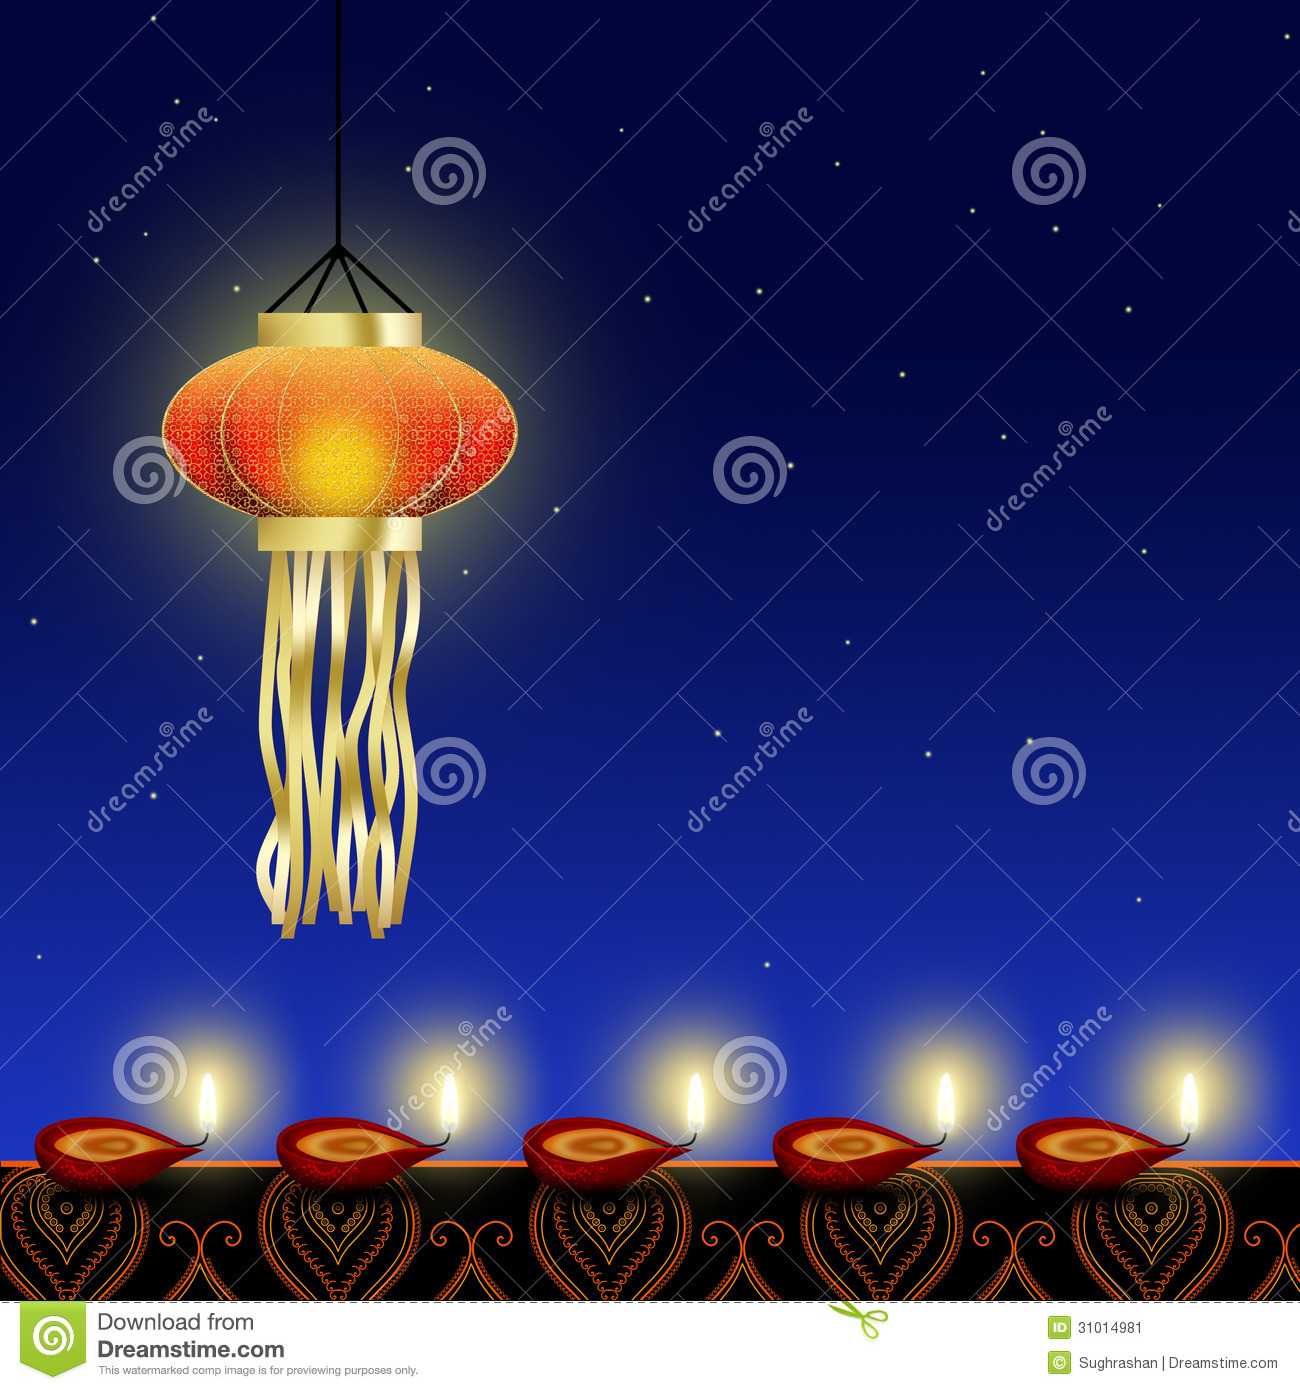 diya lamps template with Stock Image Luminous Diwali L  Happy Illustration Shiny Red Diyas Cup Shaped Indian Oil L S Ornamental Border Night Image31014981 on 30796 also Stock Vector Rangoli Alpana Mandala Kolam Design also Christmas Lights furthermore 40 Diwali Ideas Cards Crafts Decor Diy as well Write Name On Diwali Greeting Card.